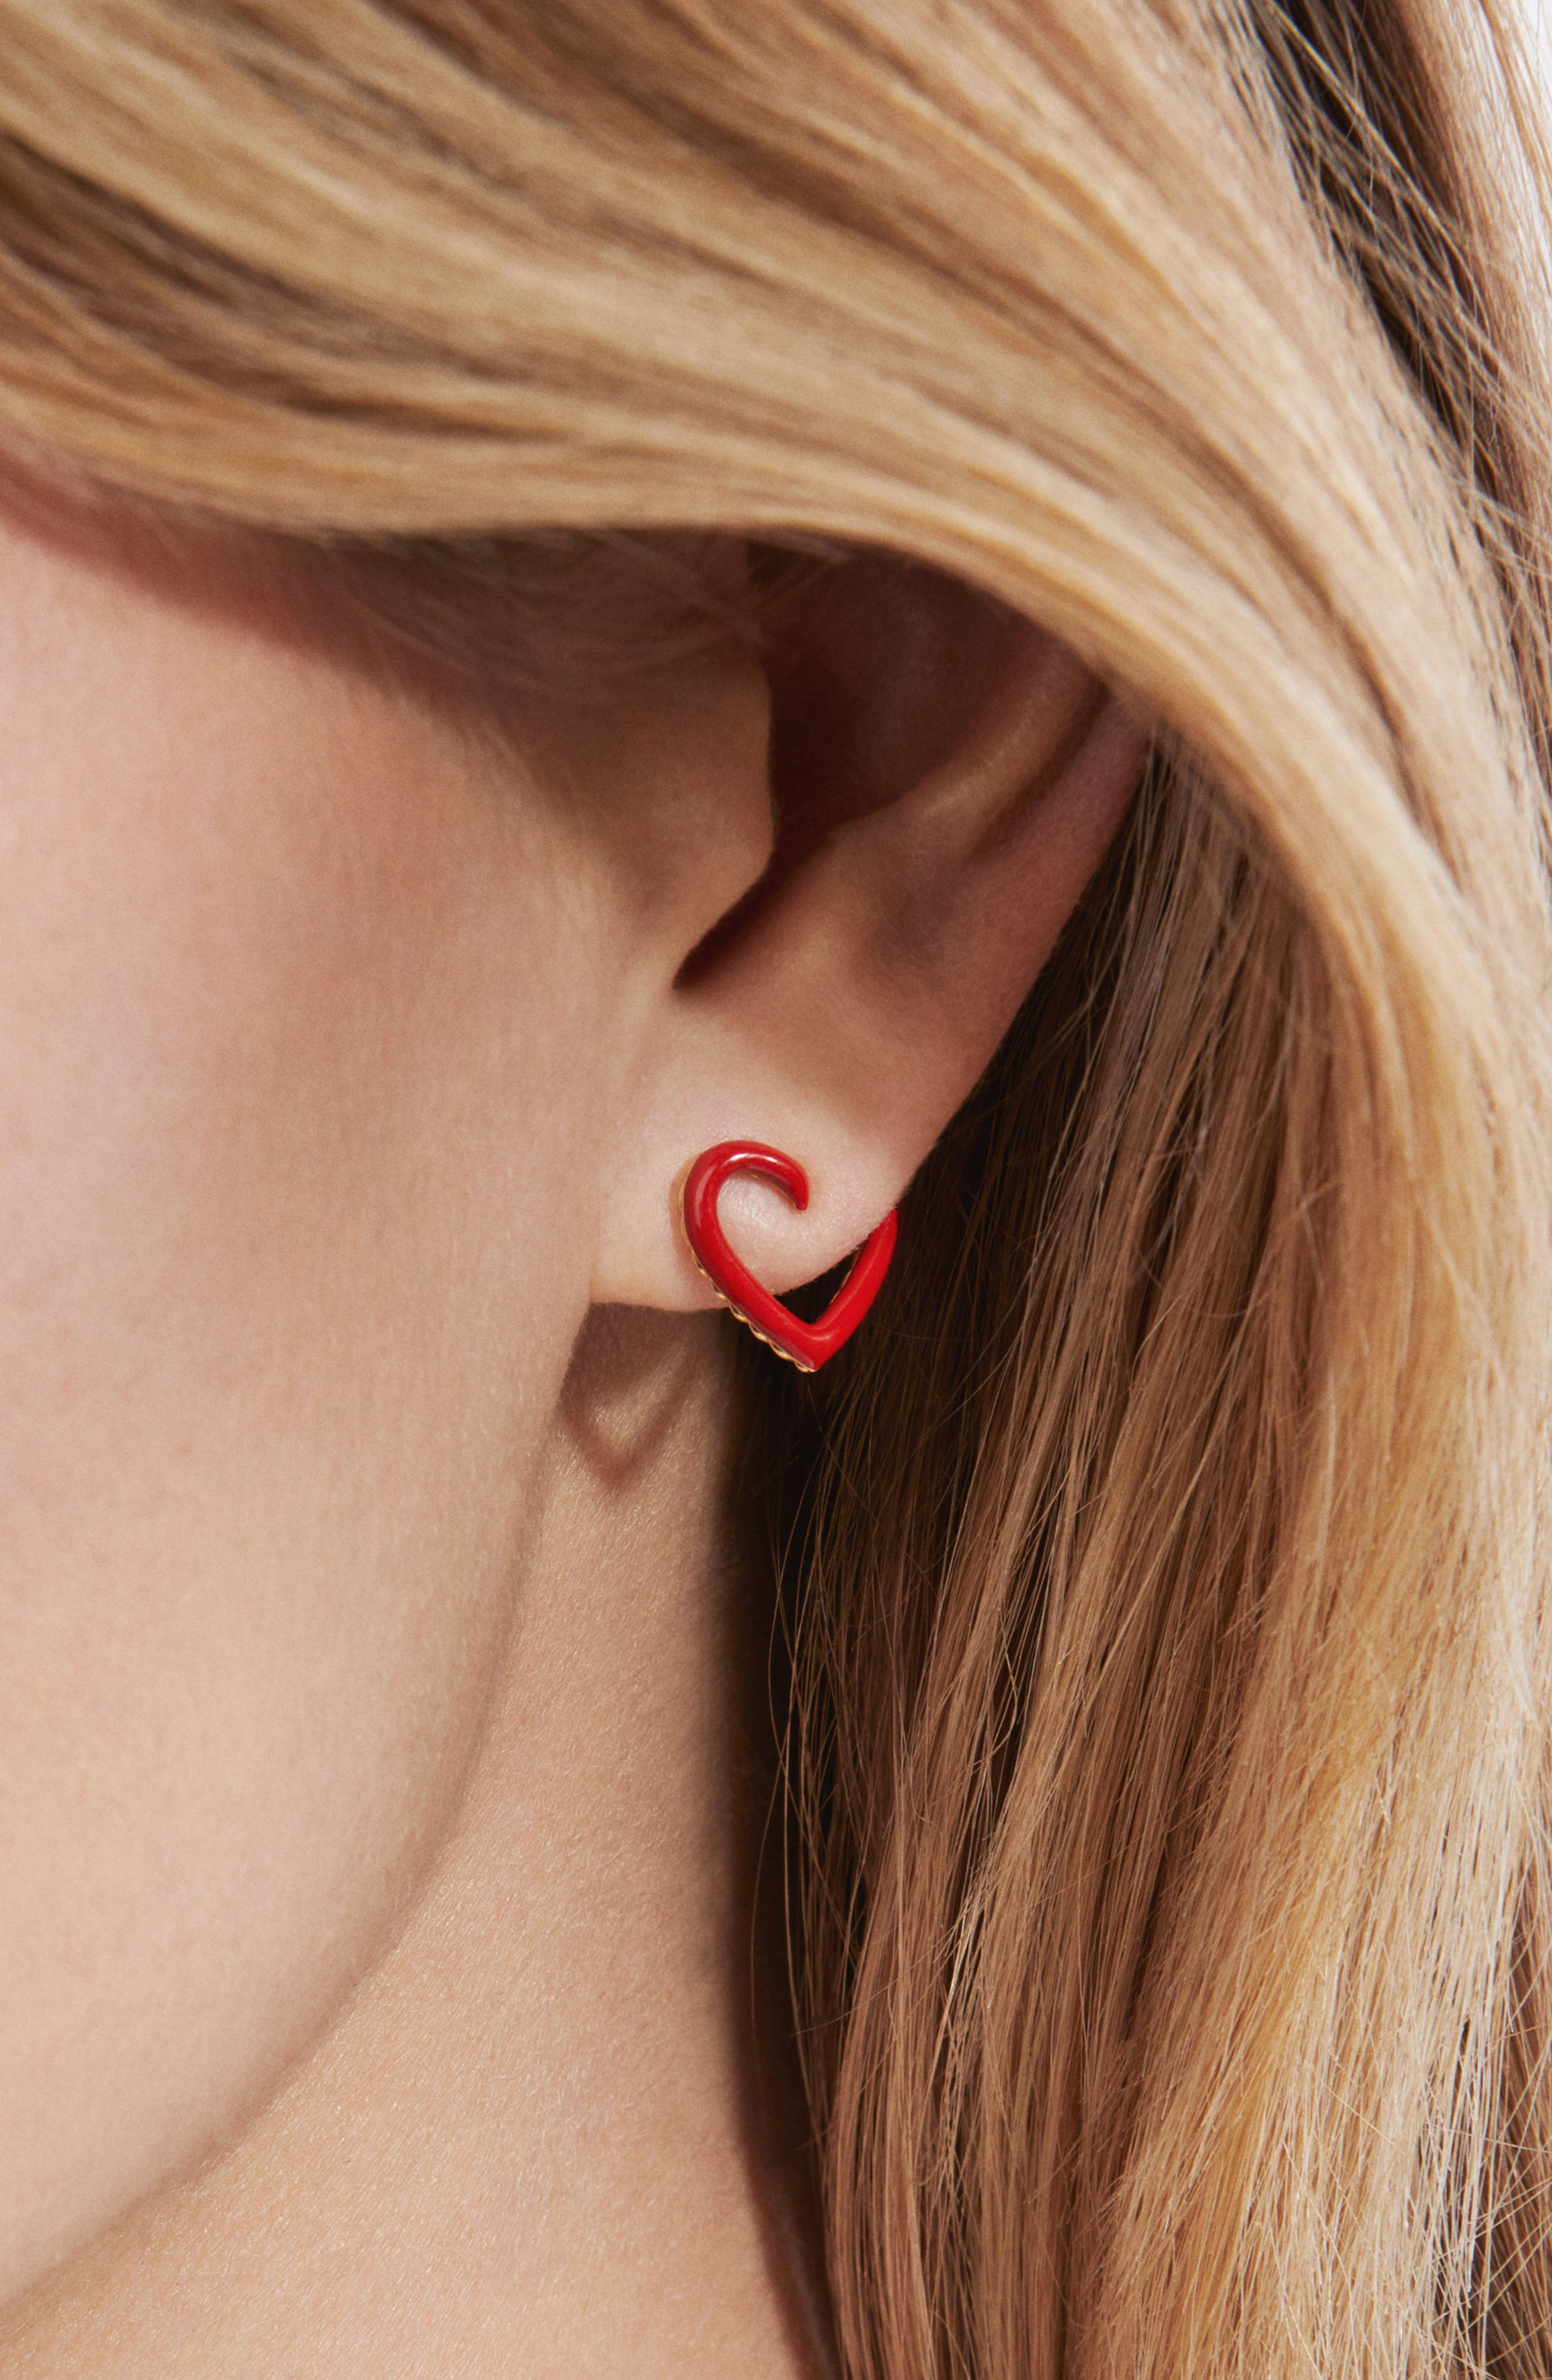 Cable Heart Earrings in Red Enamel and 18K Gold,                             Alternate thumbnail 3, color,